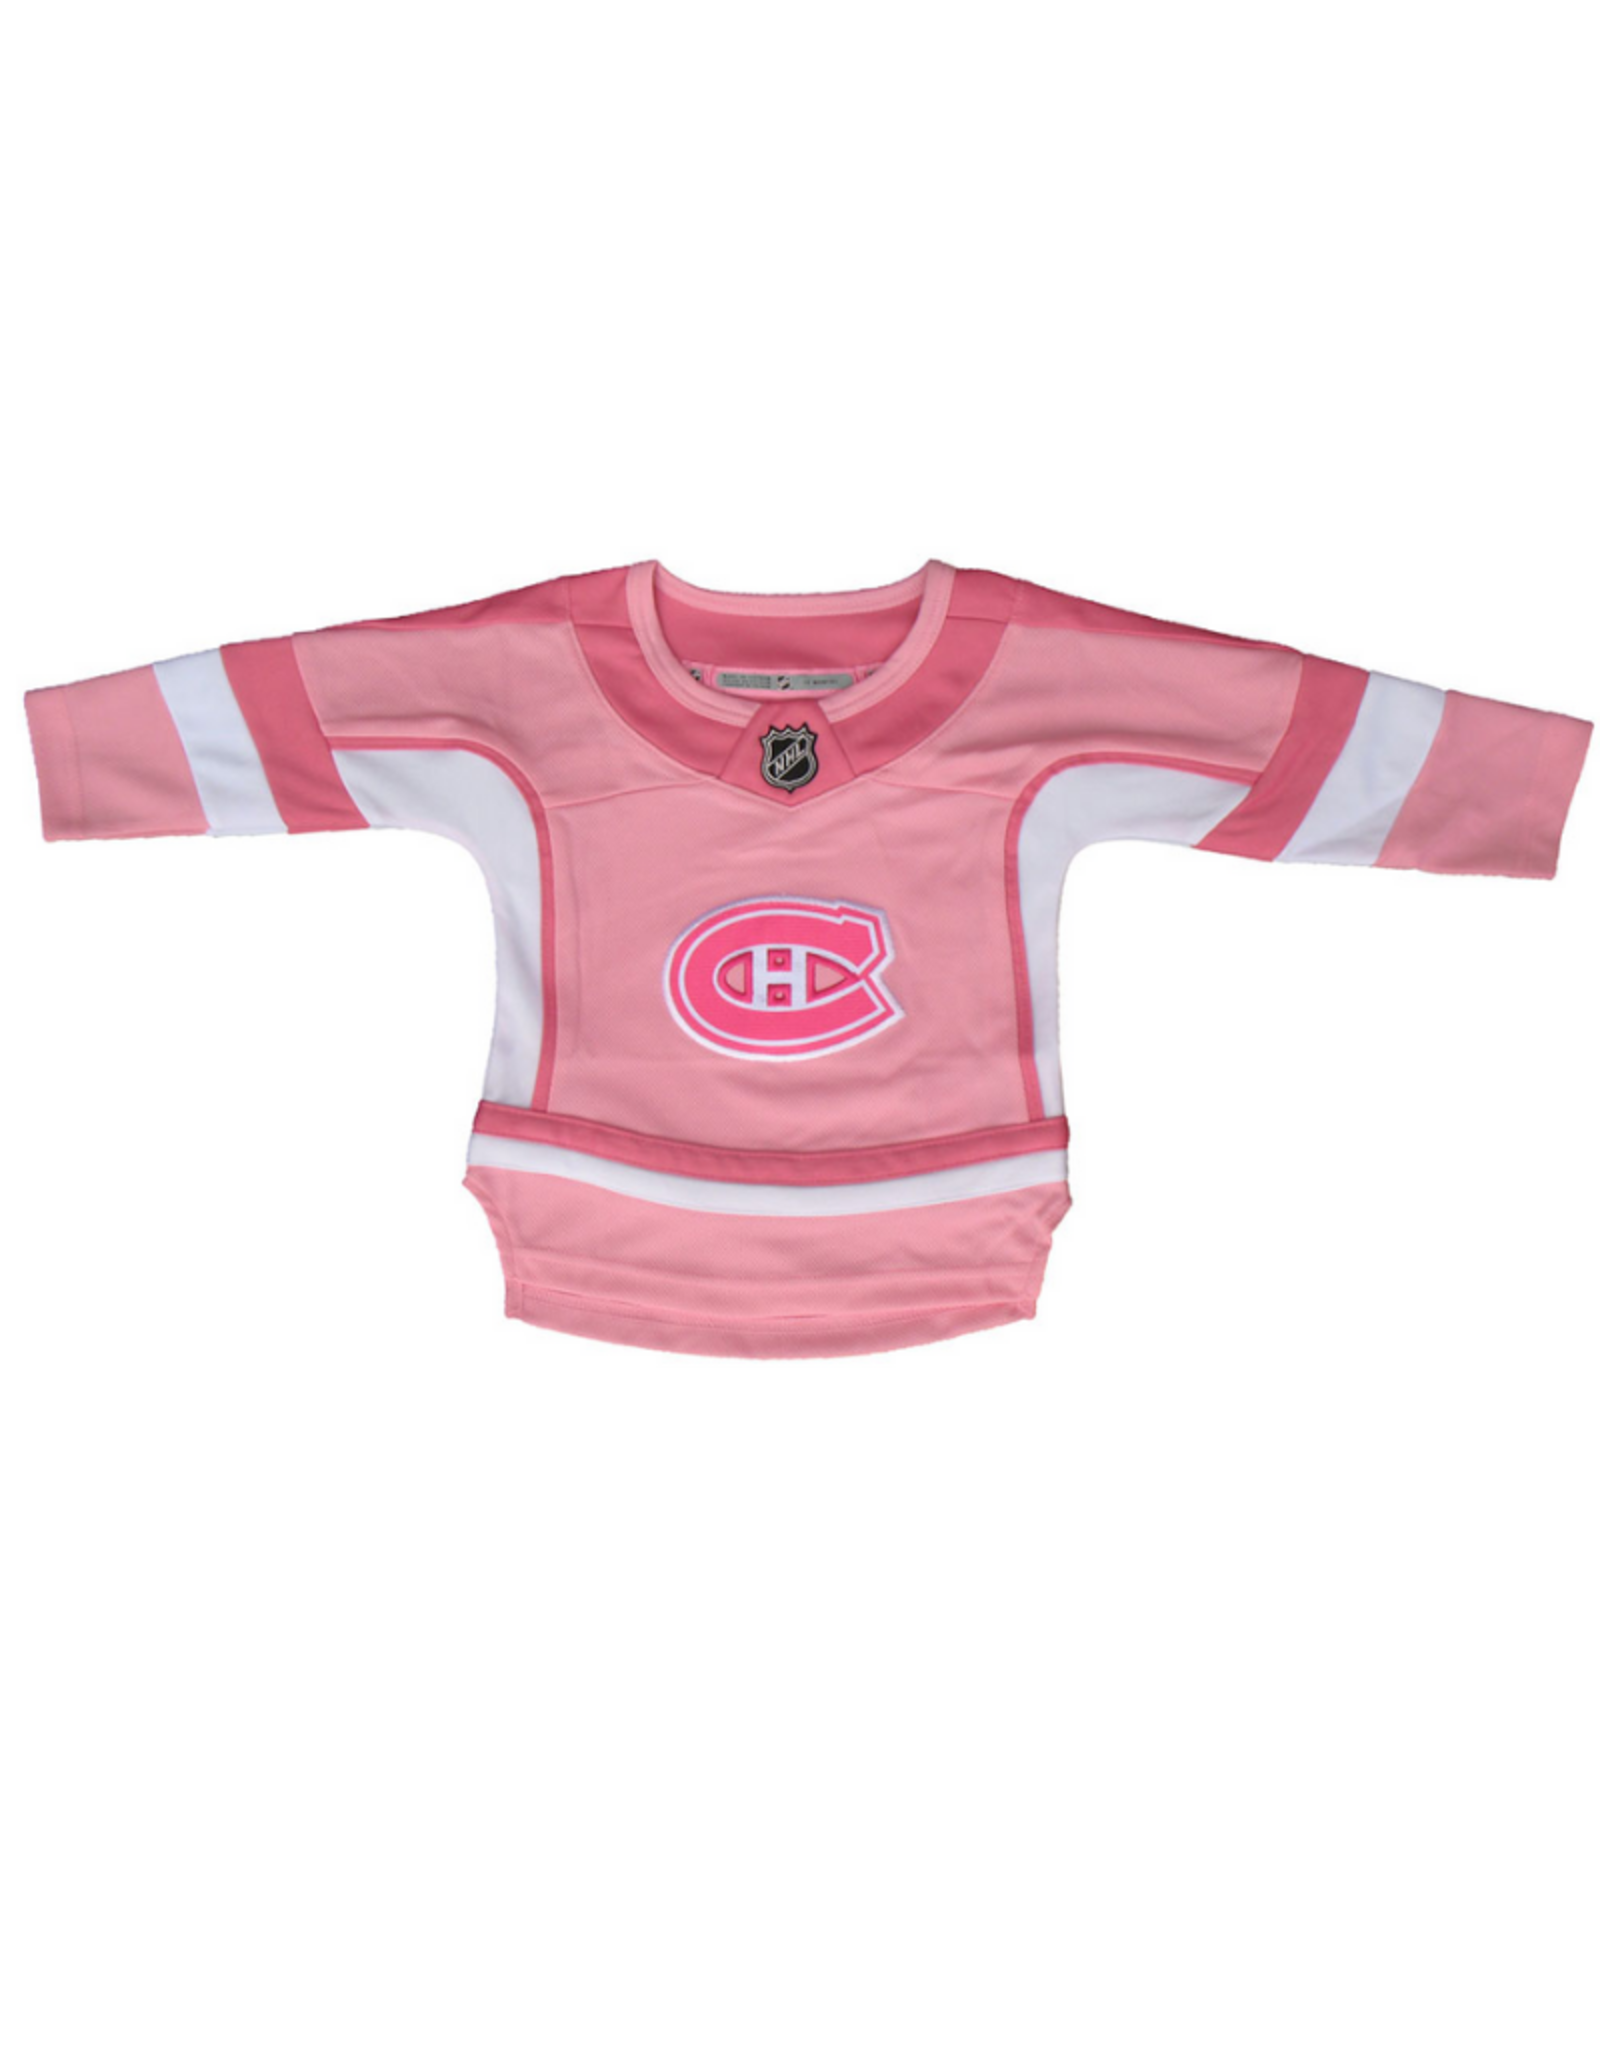 NHL Infant Sewn-On Jersey Montreal Canadiens Pink